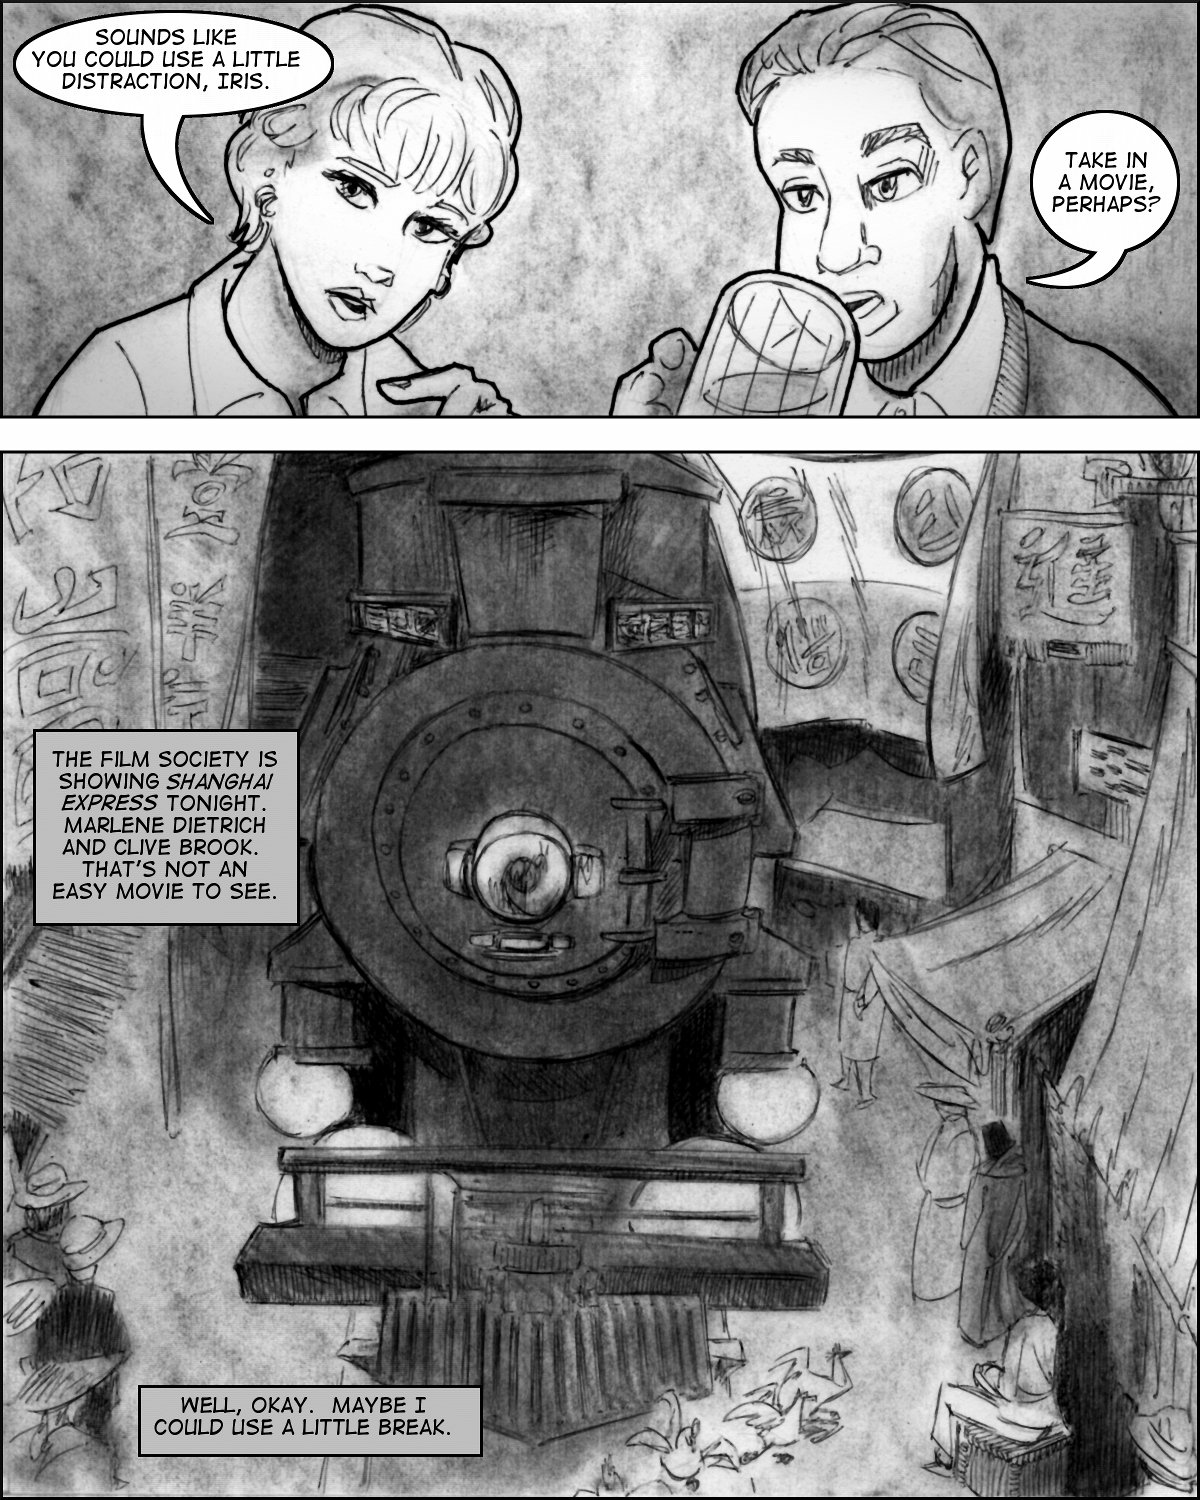 A panel reproduces a famous screenshot from Shanghai Express.